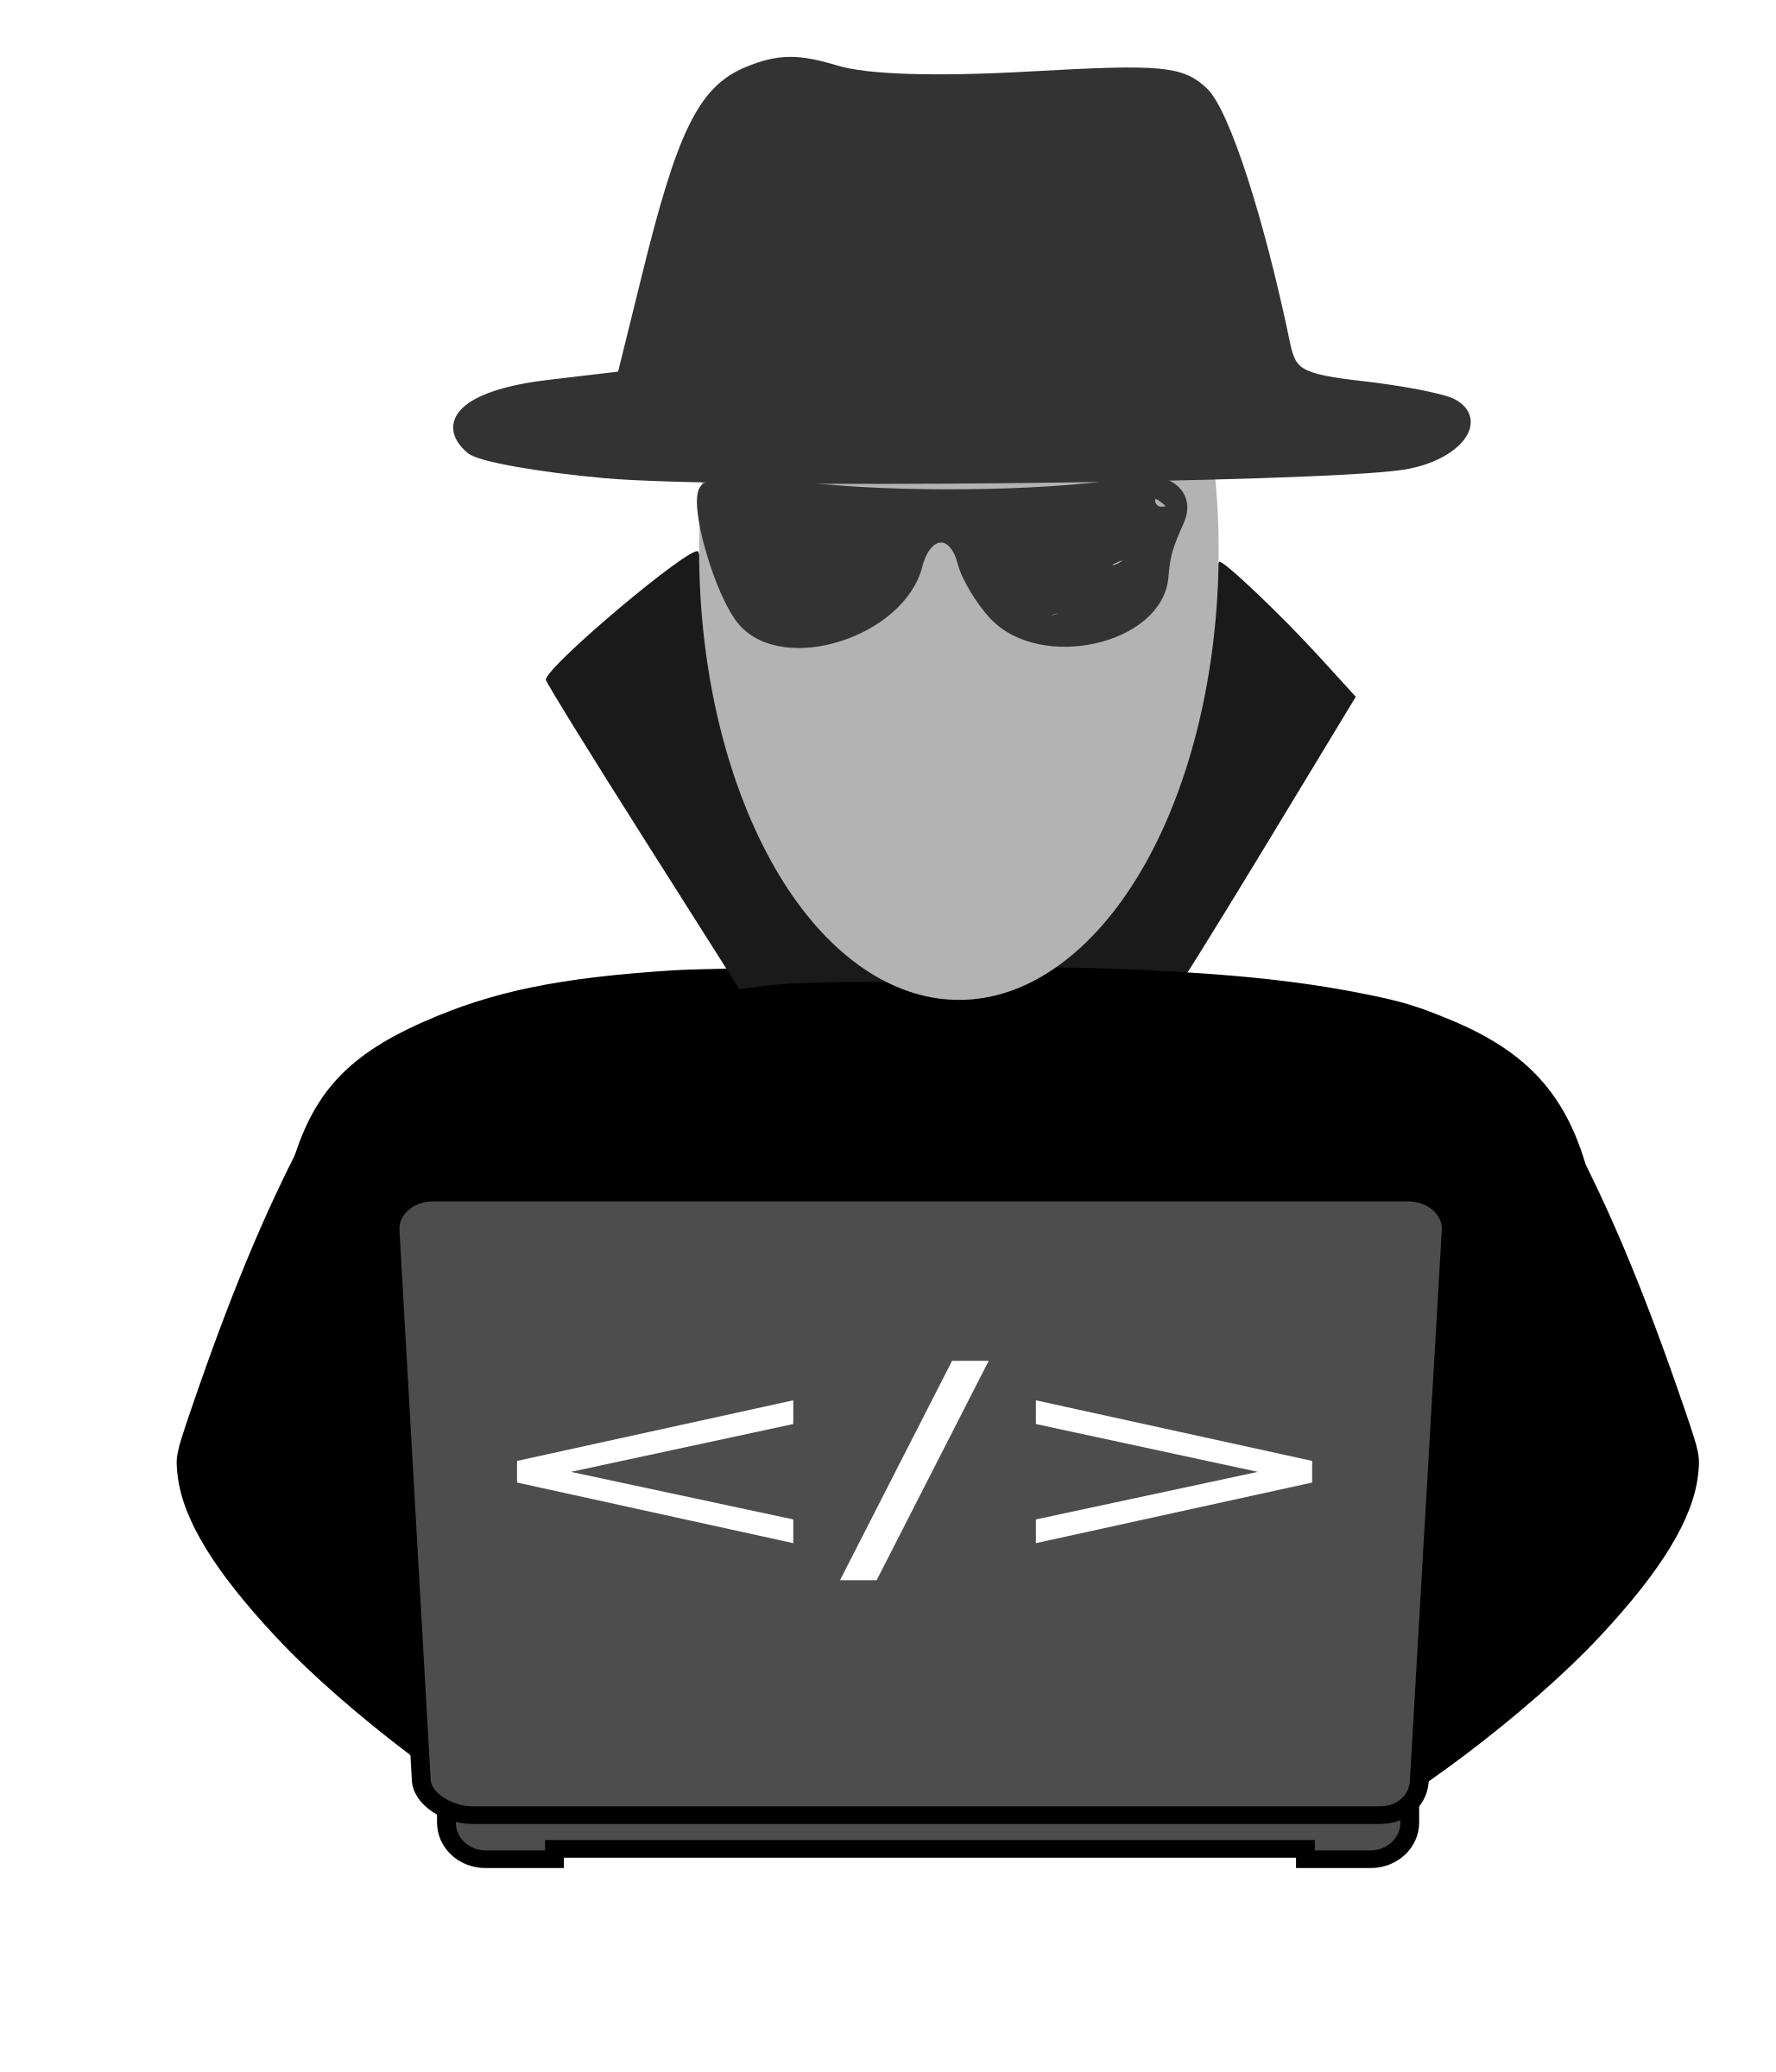 Spy clipart computer security. Behind big image png